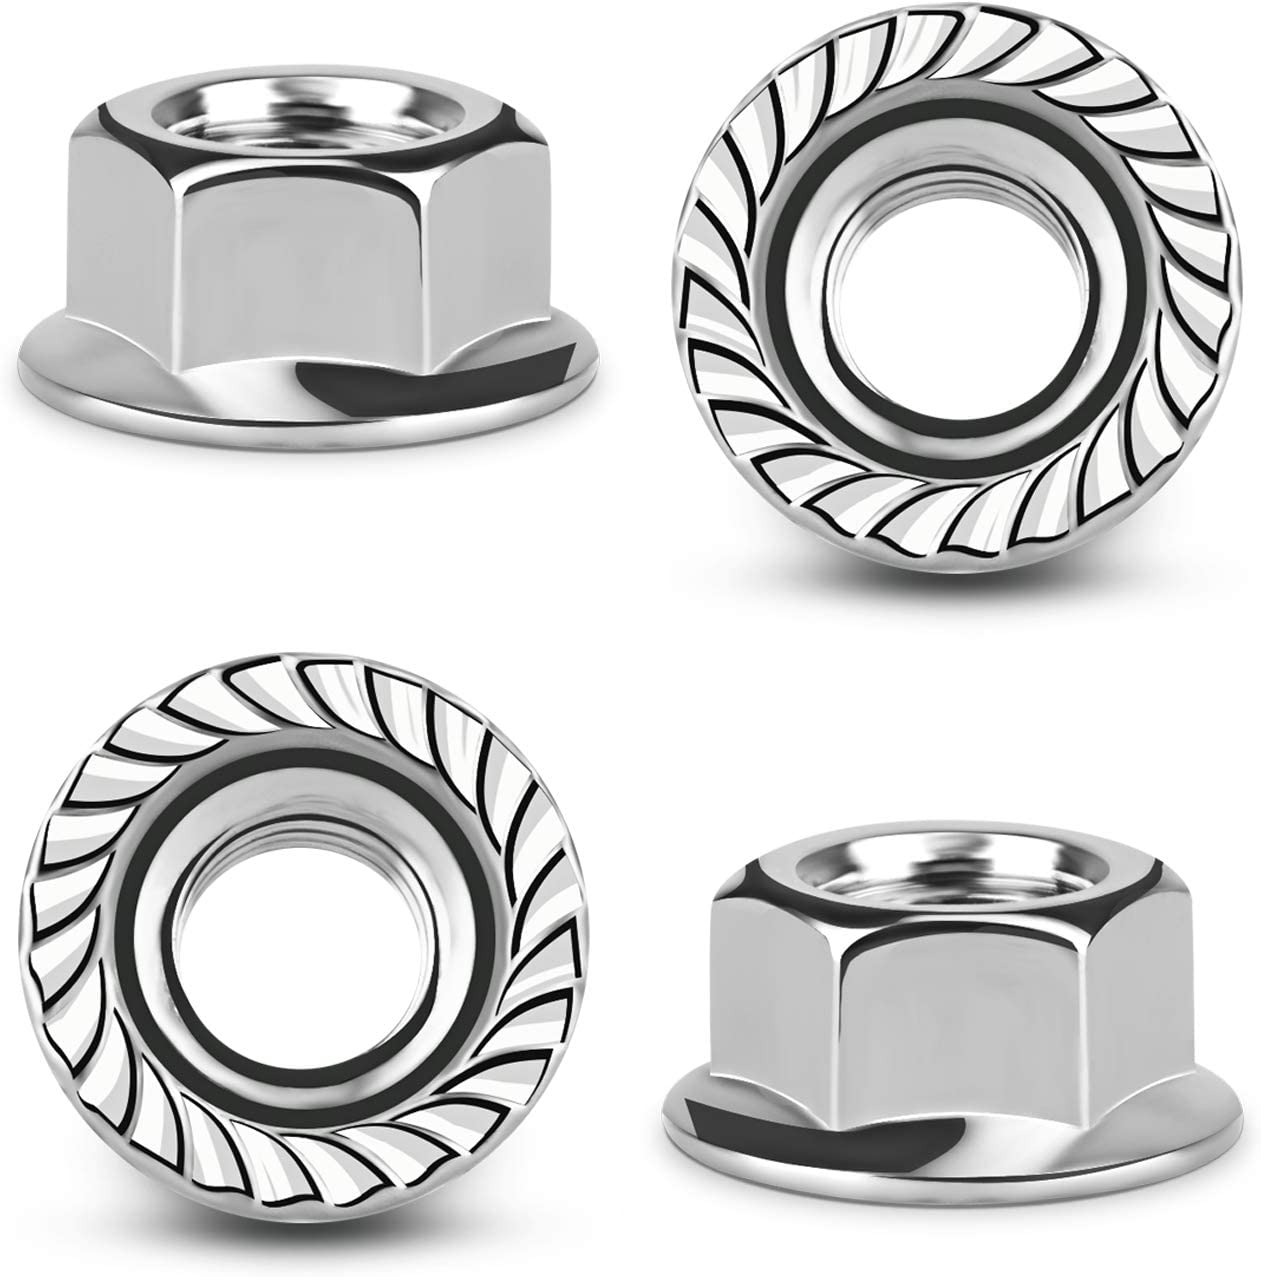 M5,M6,M8,M10 Electrical Equipment Micgeek 30 pcs Hex Flange Nut Fine,Thread Hexagonal,Stainless Steel Flange Hex Nut for Mechanical Equipment Electronic Products